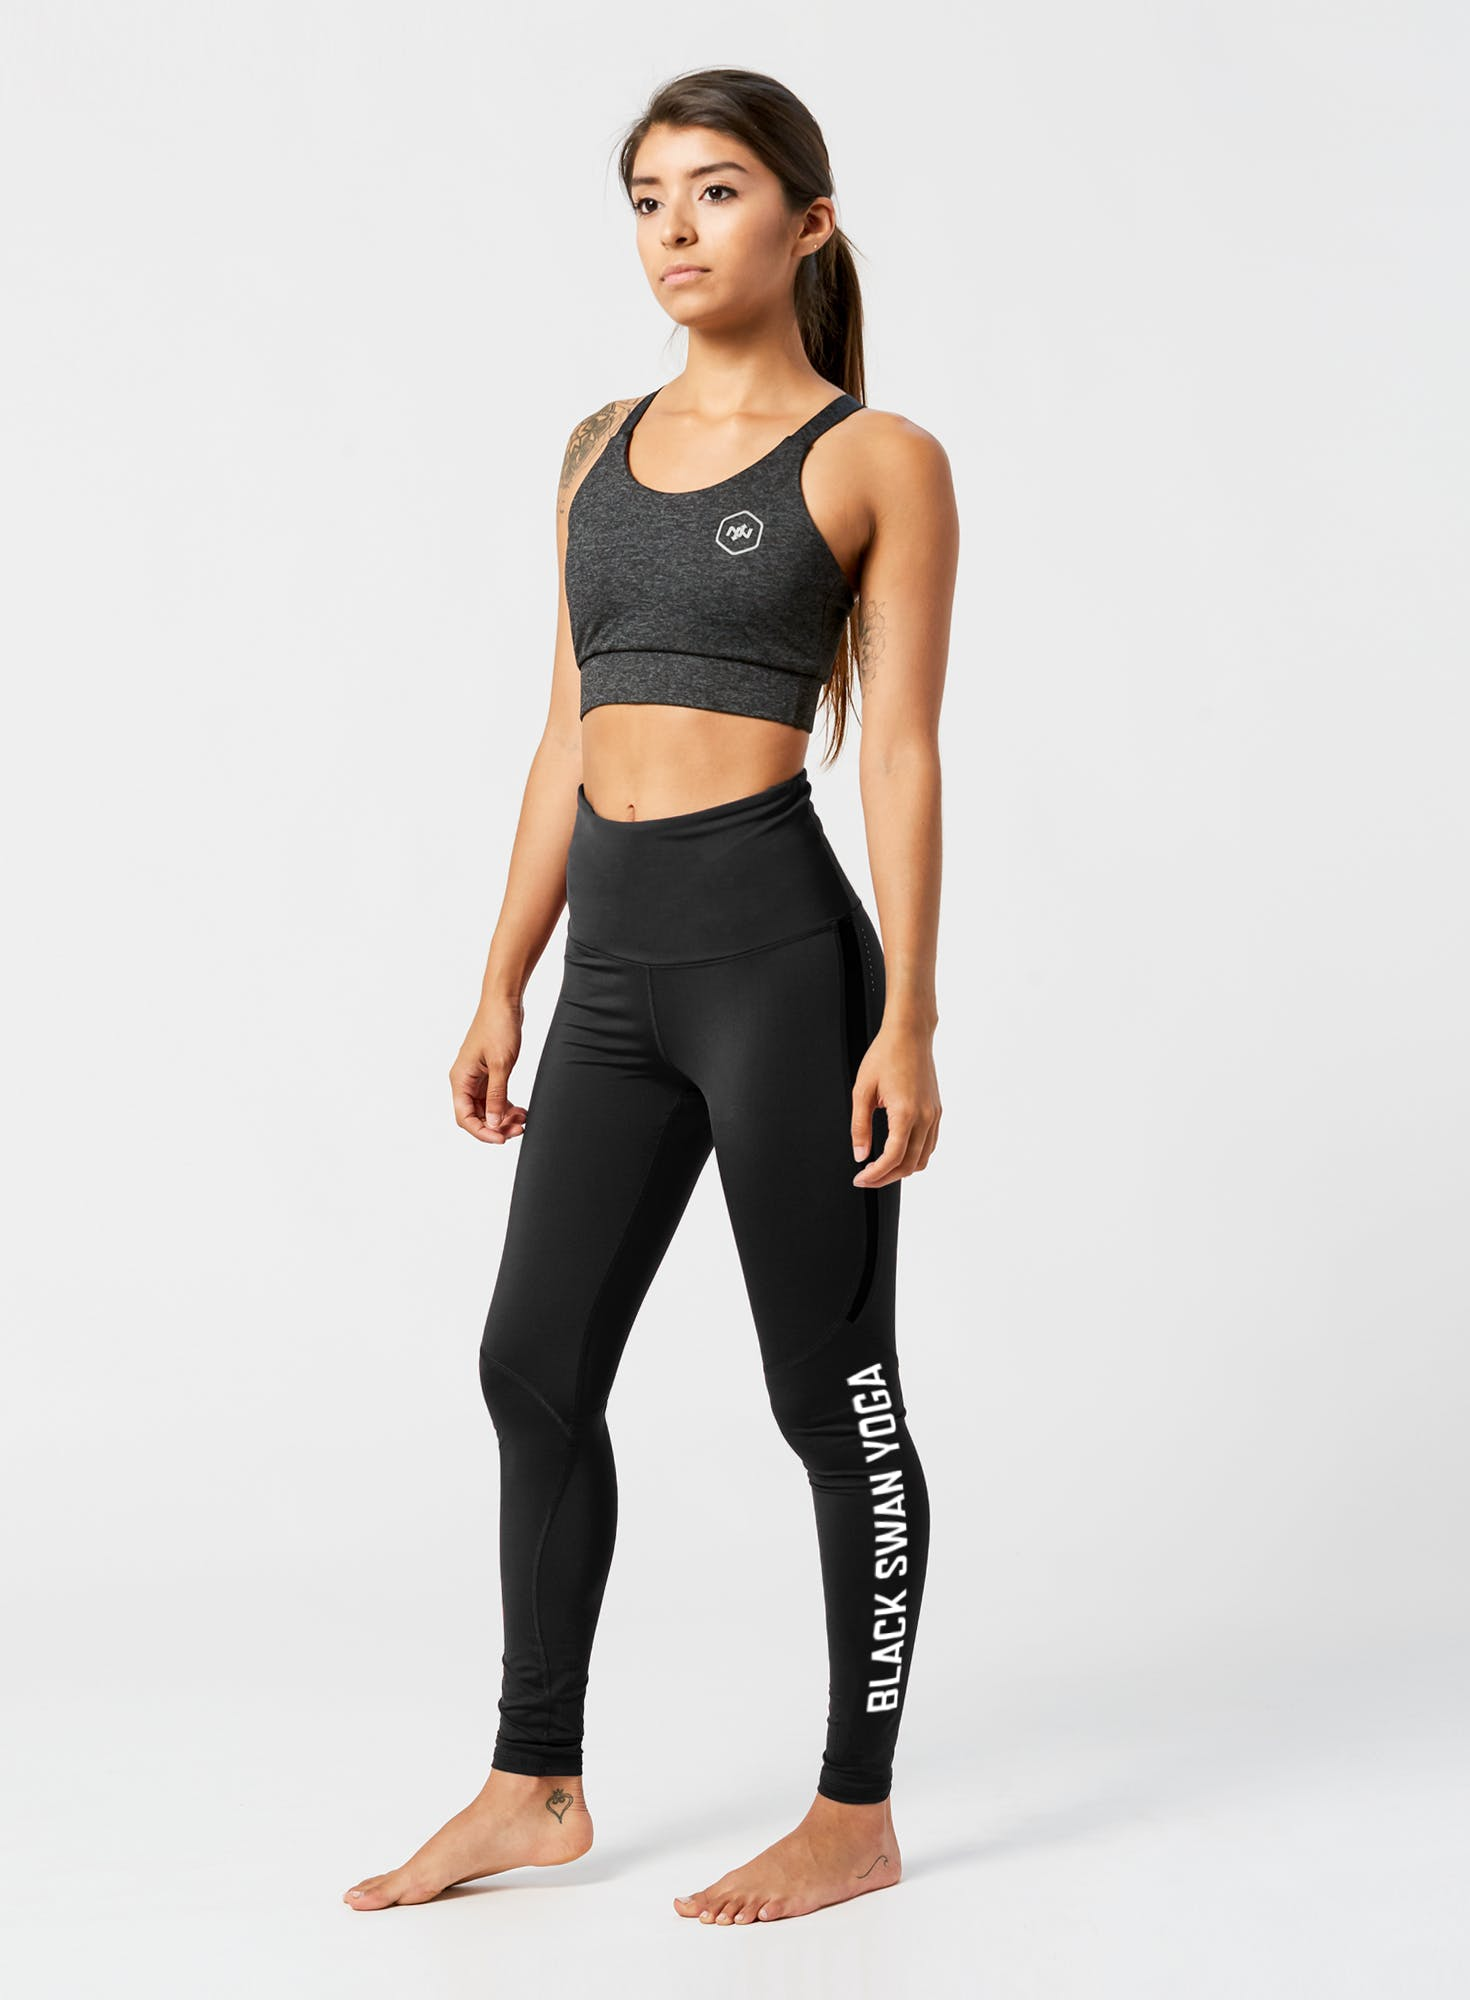 BSY Hi-Waist Performance Legging